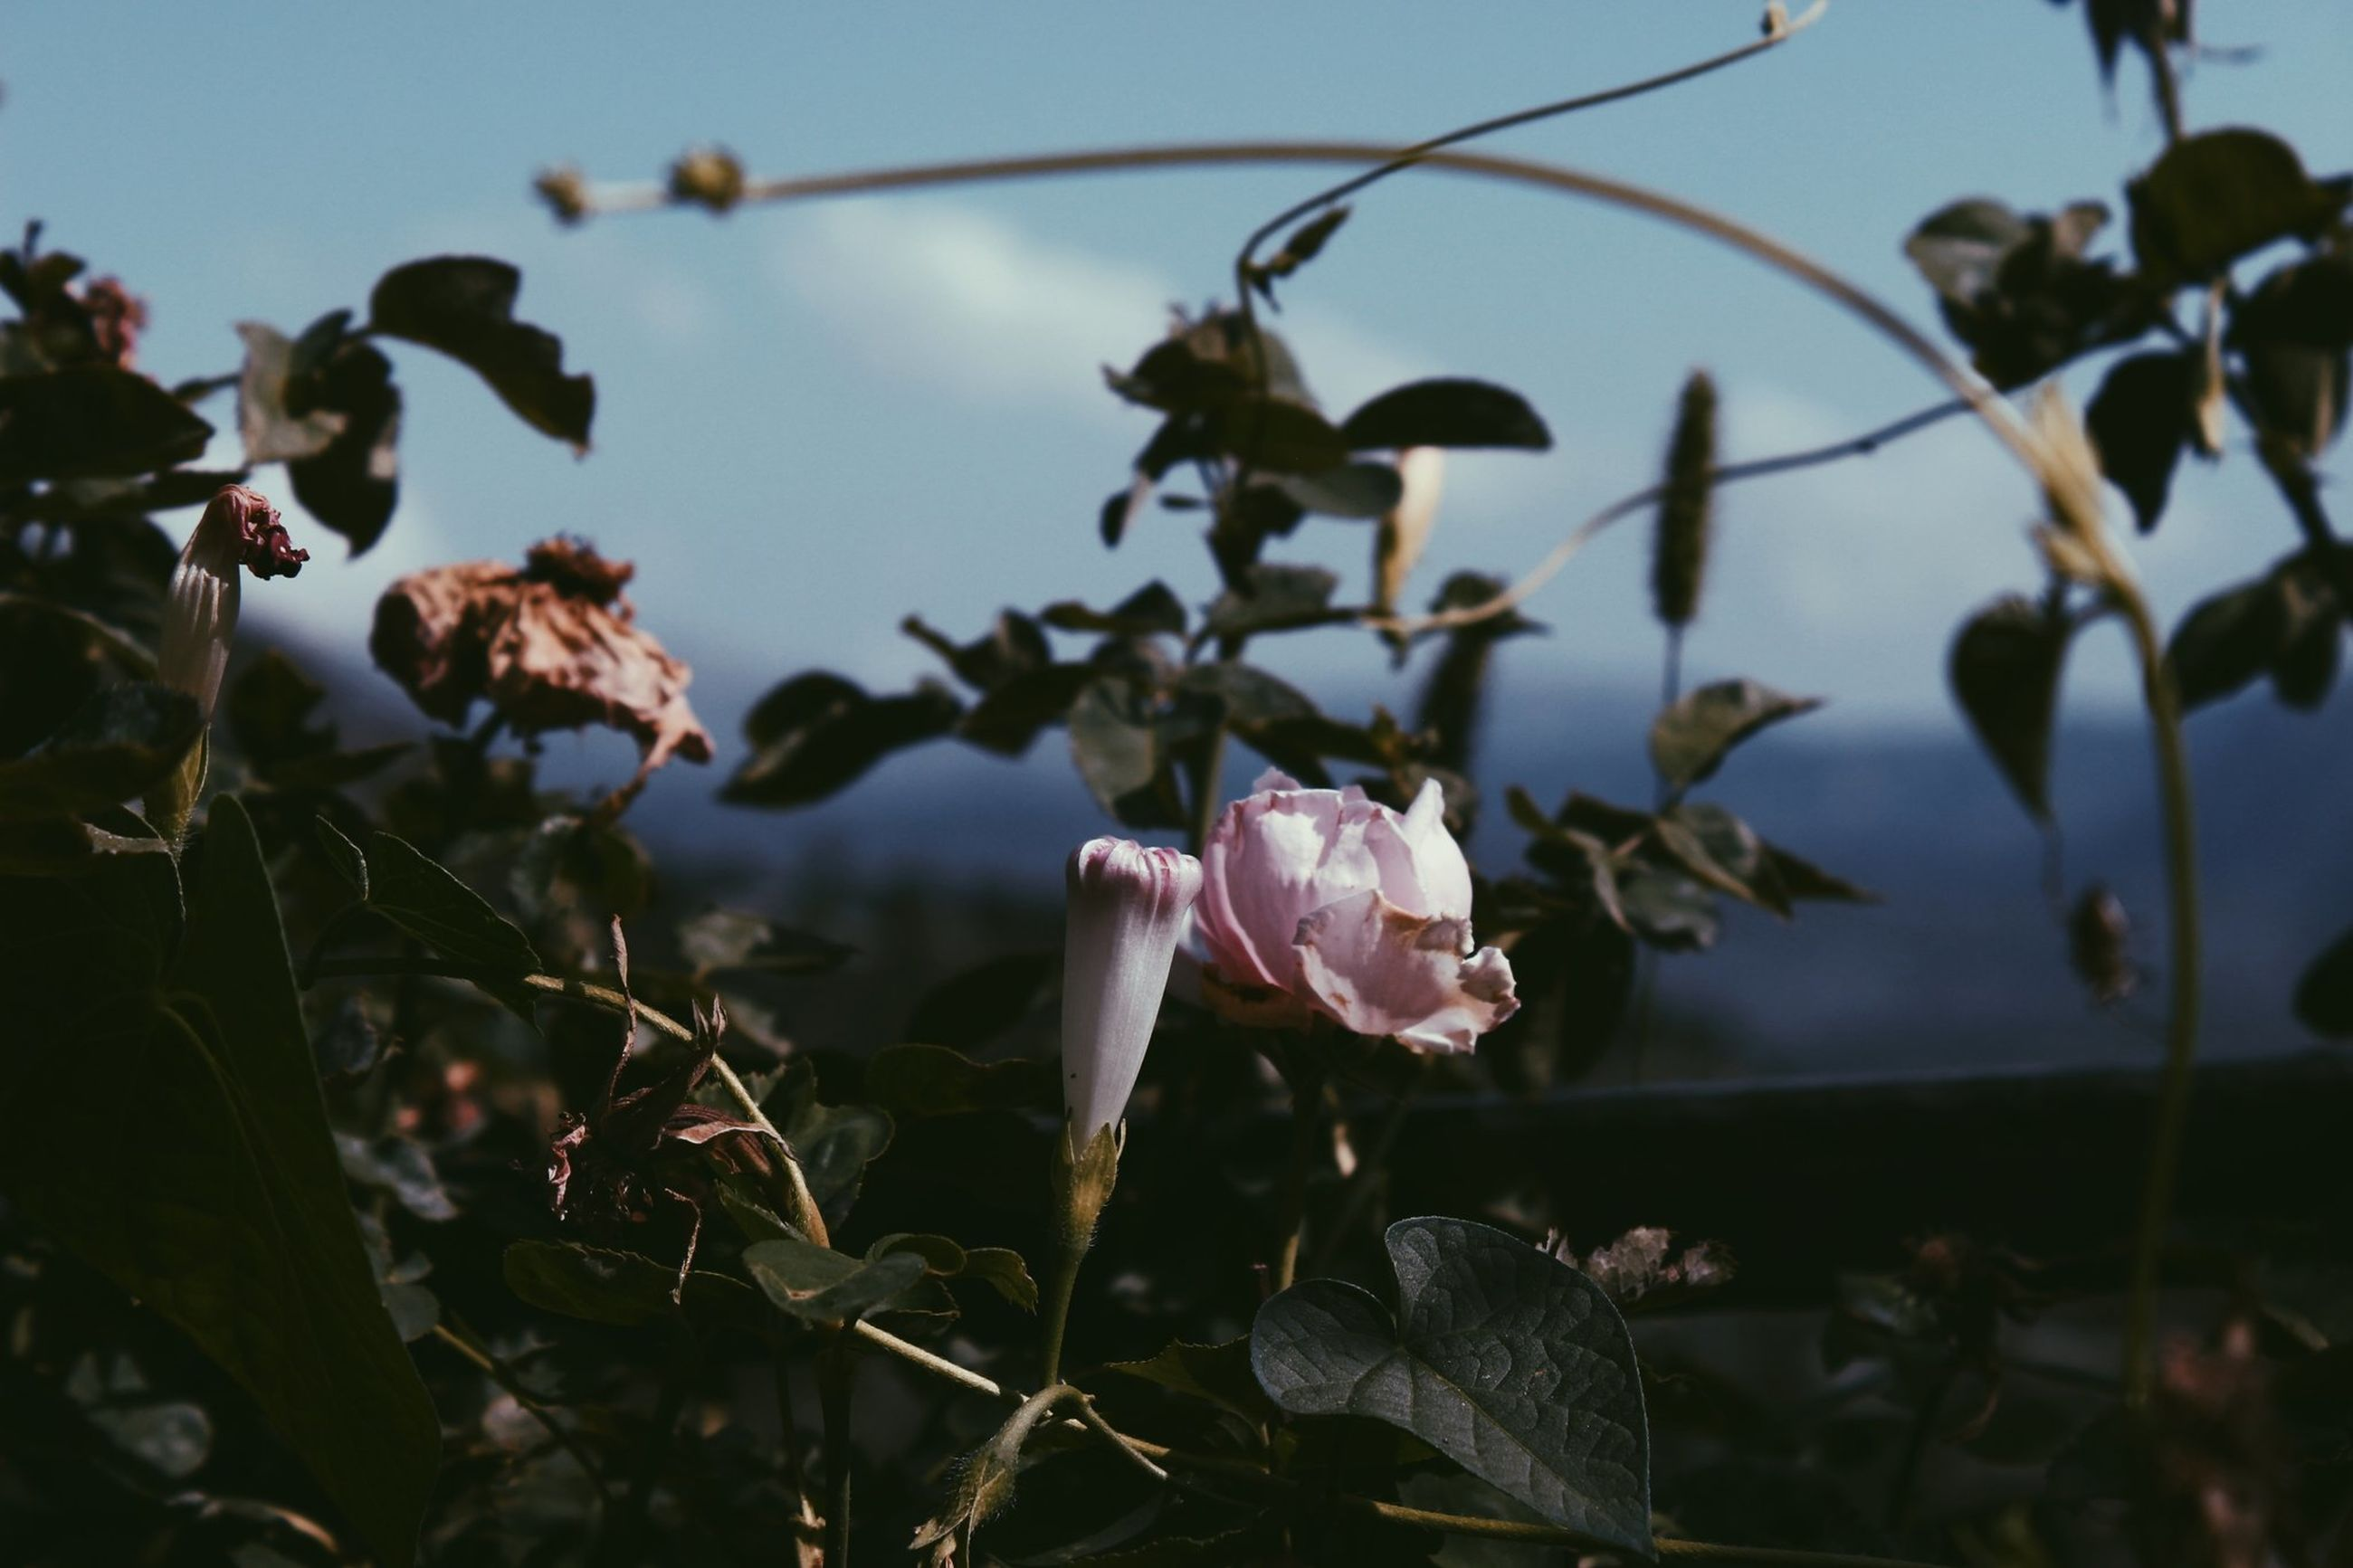 plant, flower, growth, beauty in nature, flowering plant, freshness, petal, close-up, vulnerability, fragility, no people, nature, focus on foreground, pink color, flower head, inflorescence, day, land, outdoors, leaf